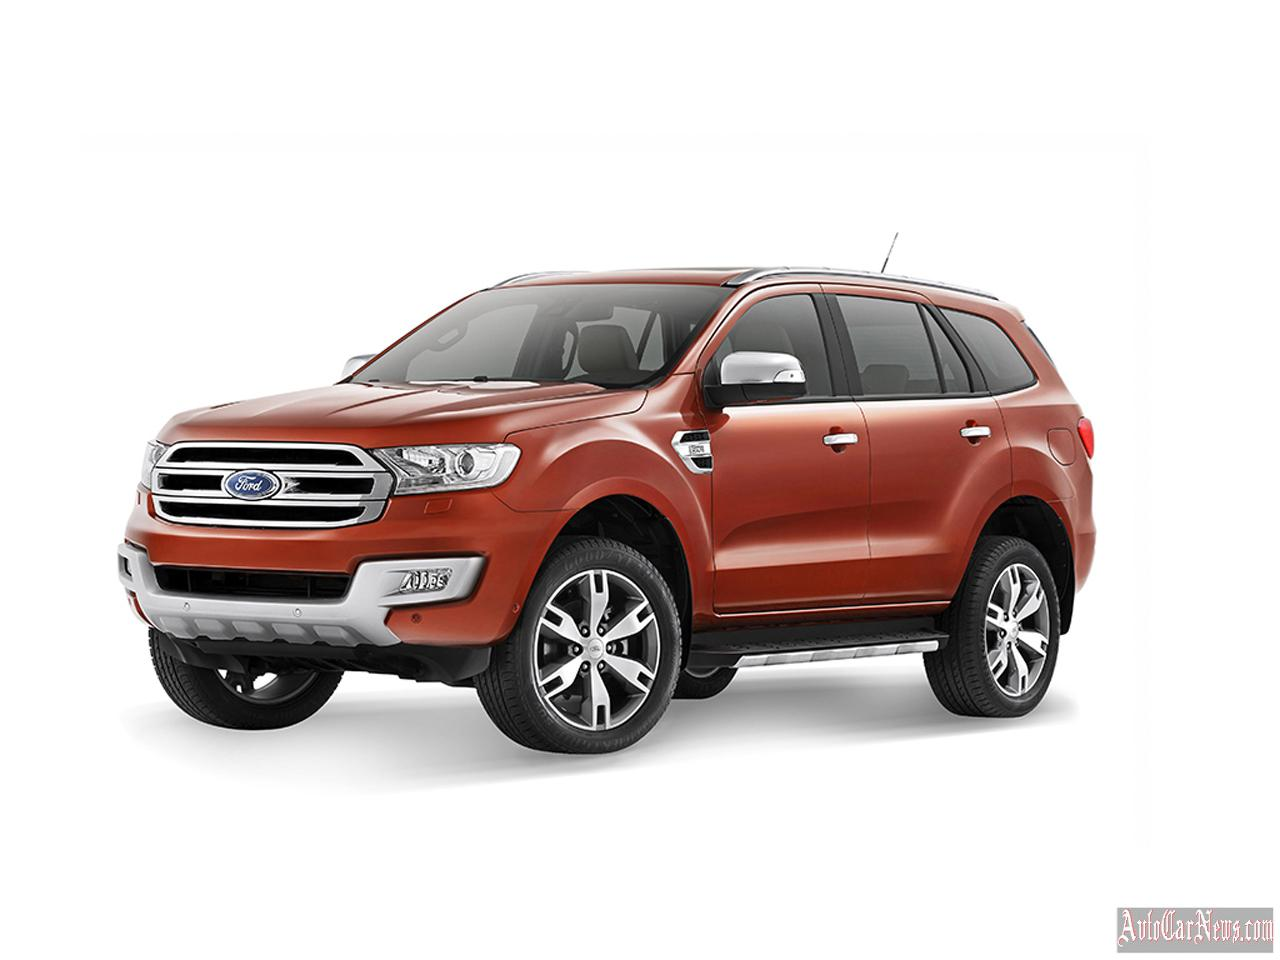 2015 Ford Everest Photos